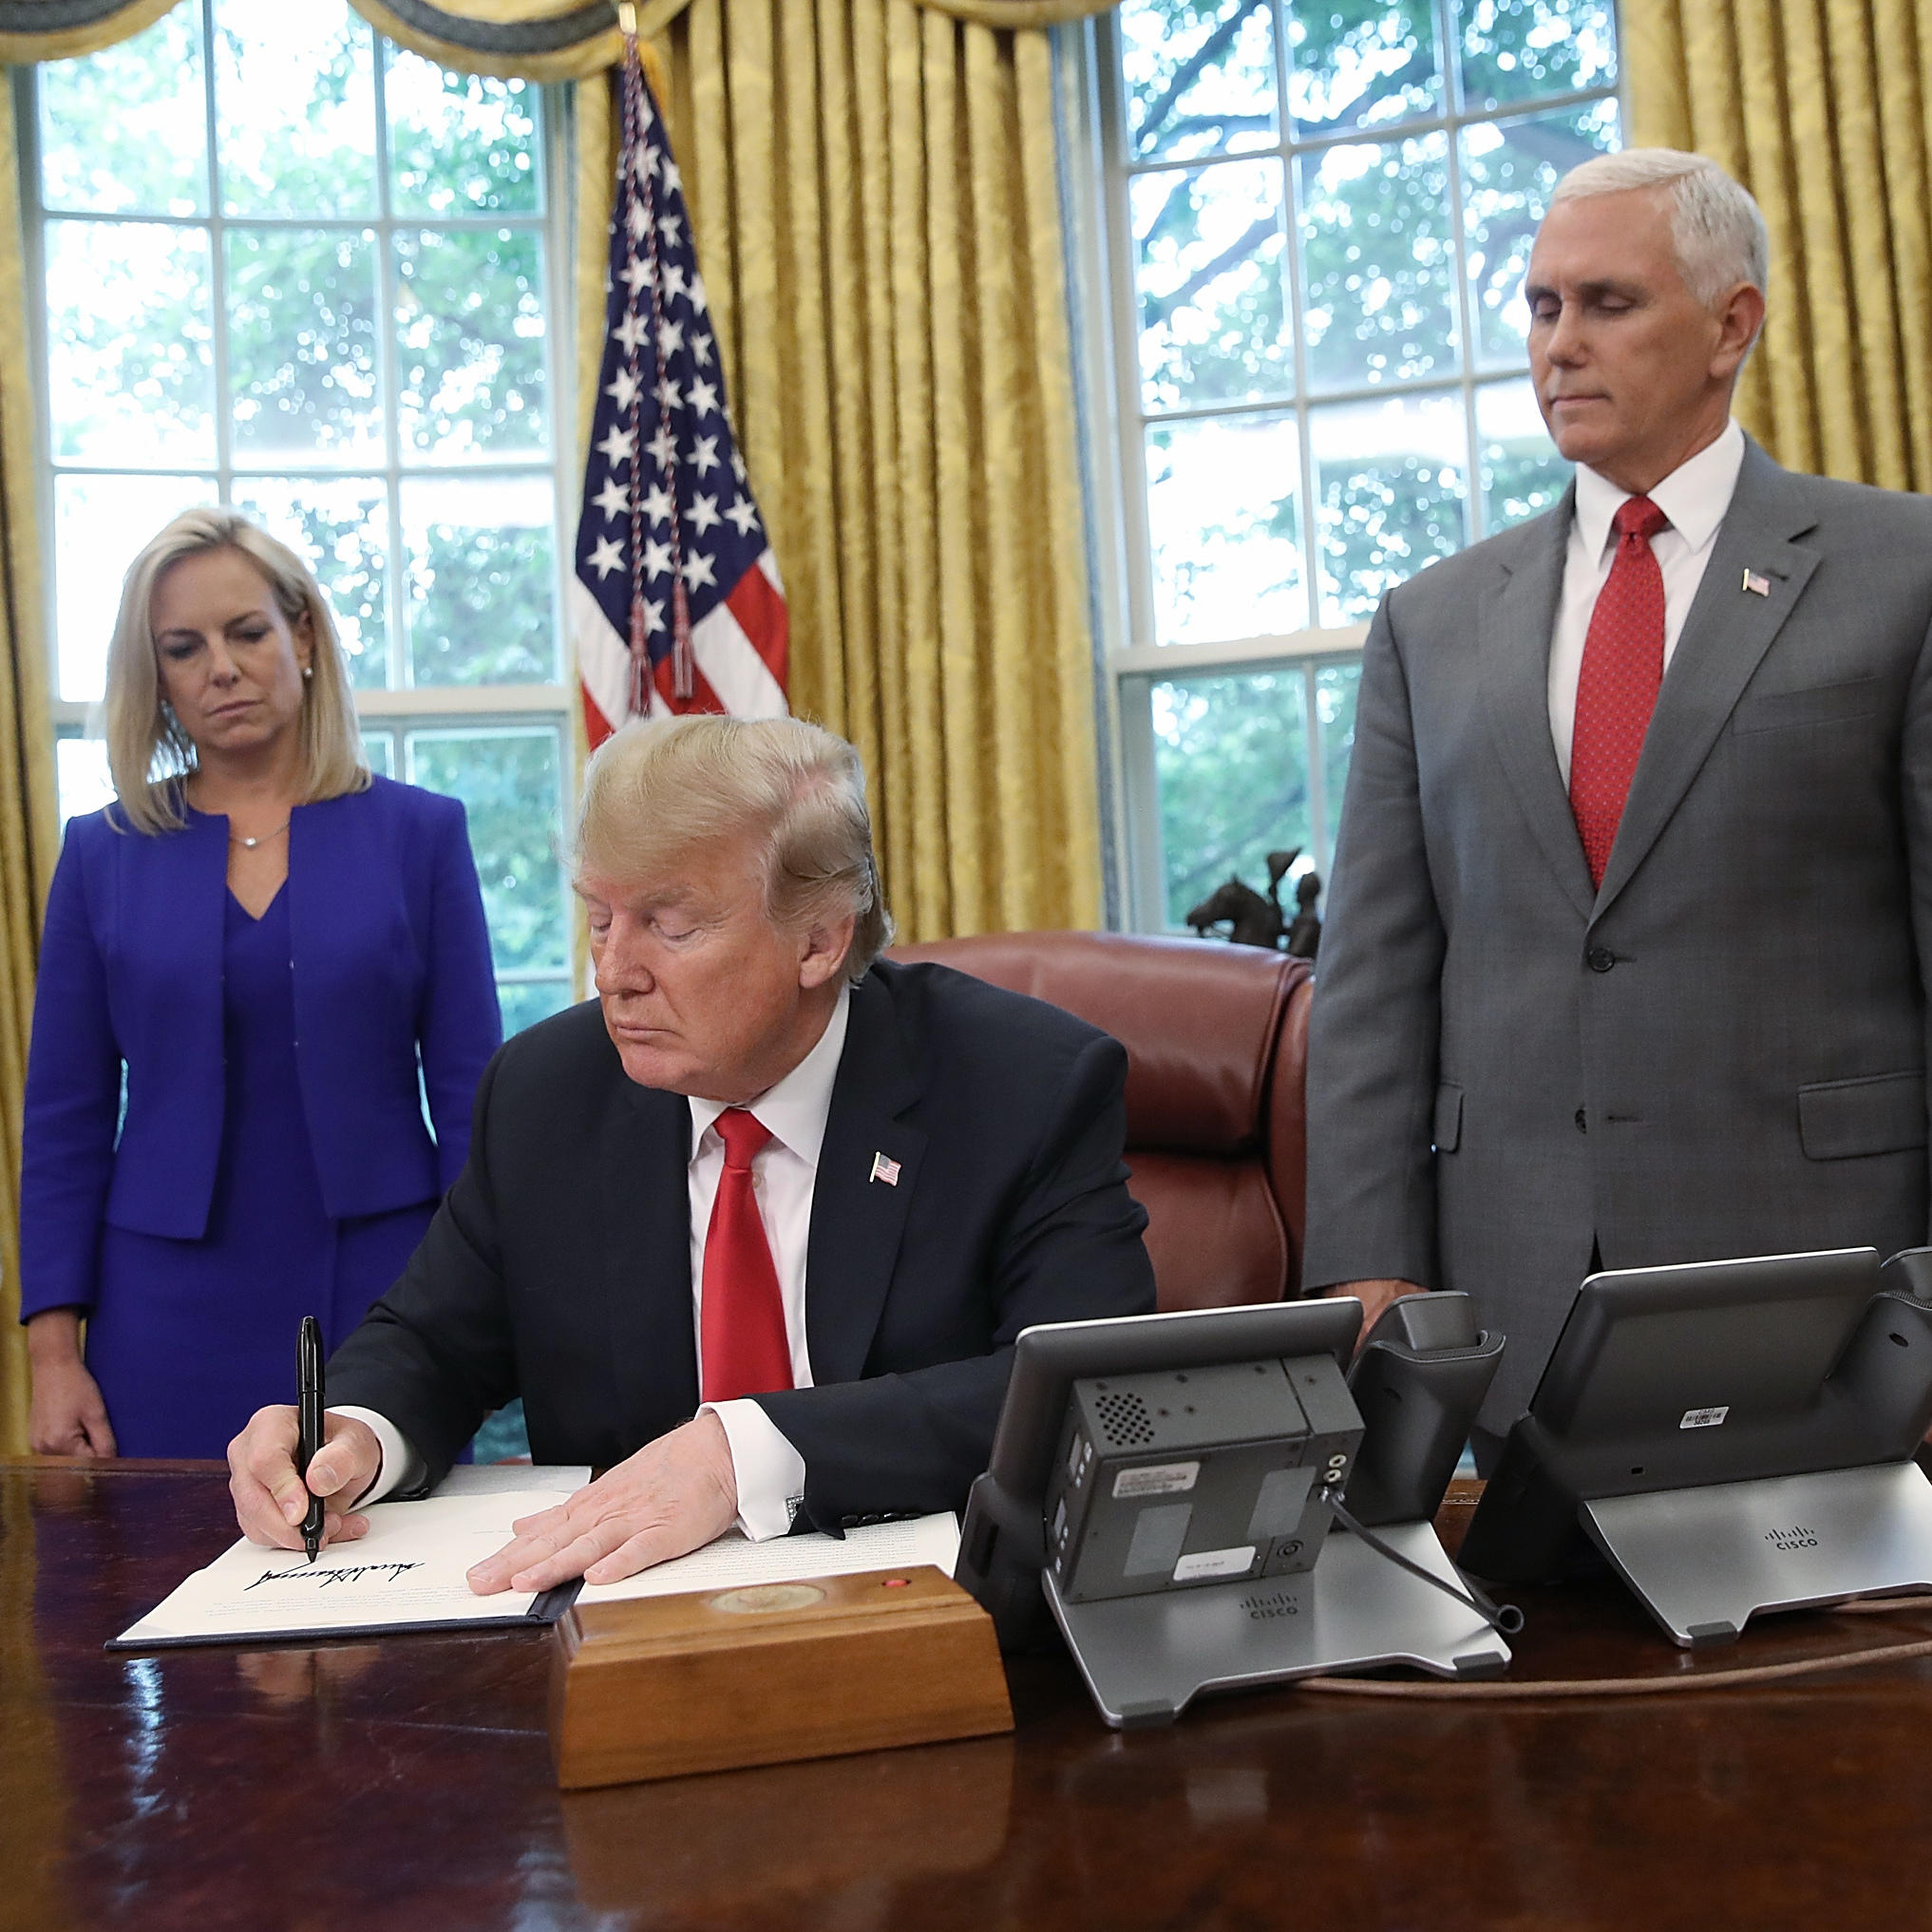 President Trump accompanied by Department of Homeland Security Secretary Kirstjen Nielsen and Vice President Pence signs an executive order regarding detaining migrant families on Wednesday at the White House